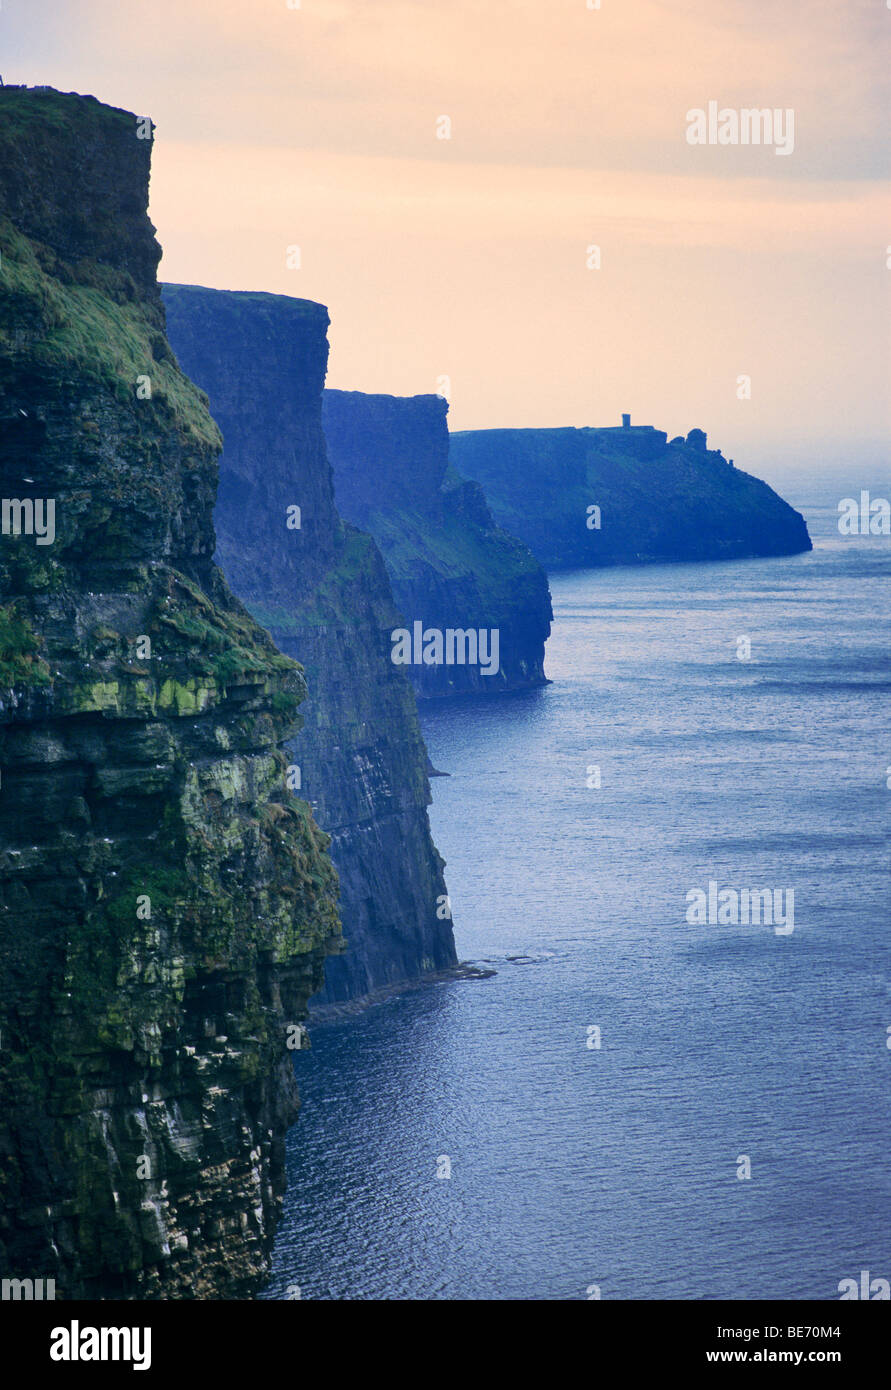 Republic of Ireland, County Clare, Cliffs of Moher - Stock Image